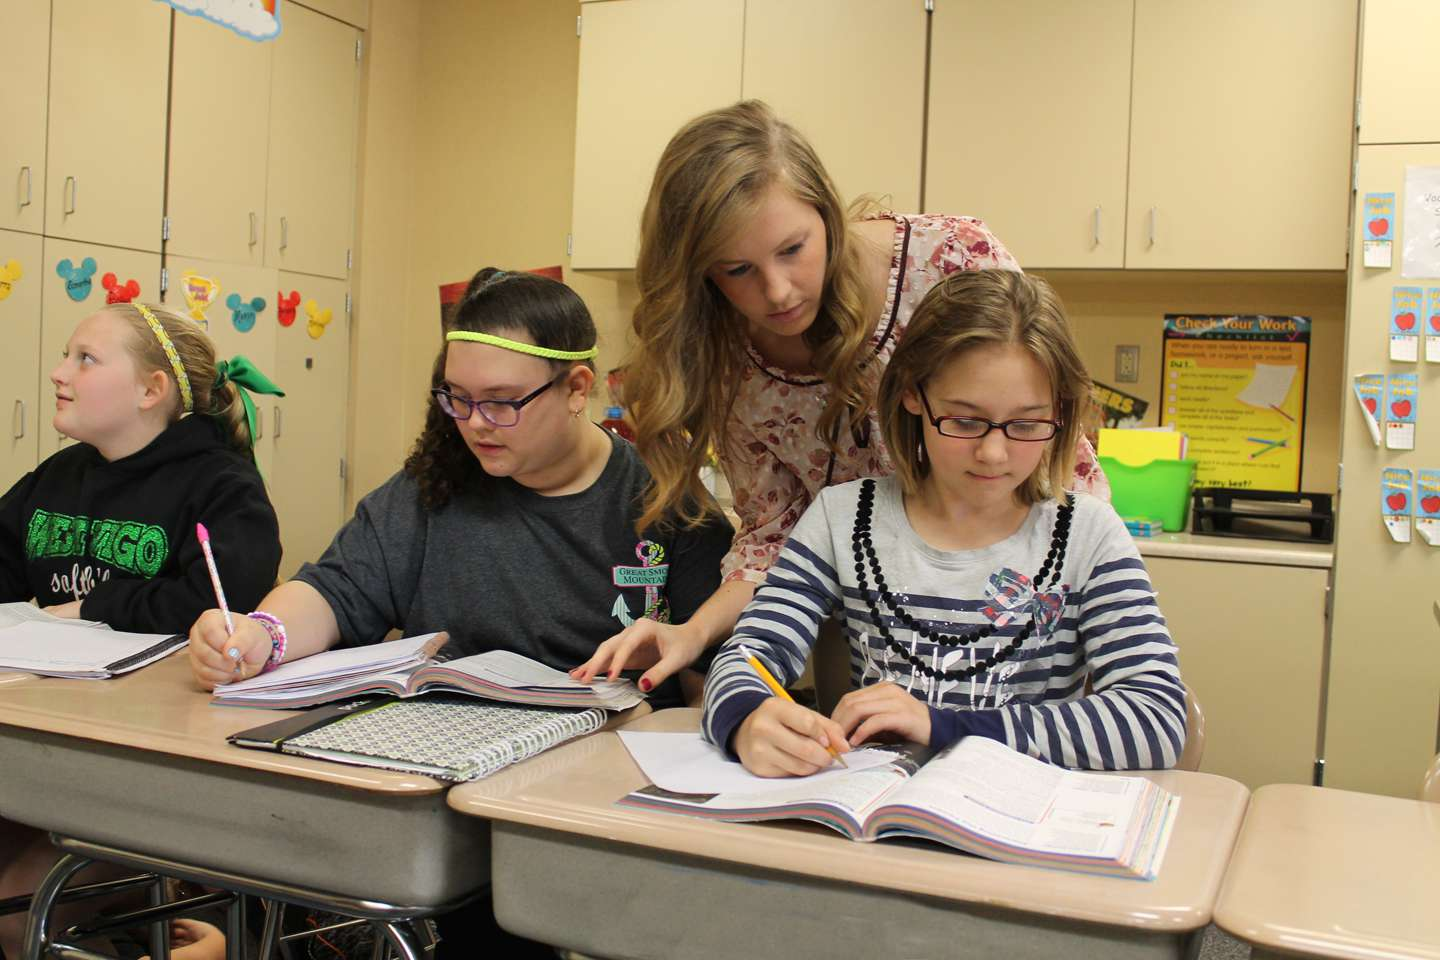 Education student helping elementary students